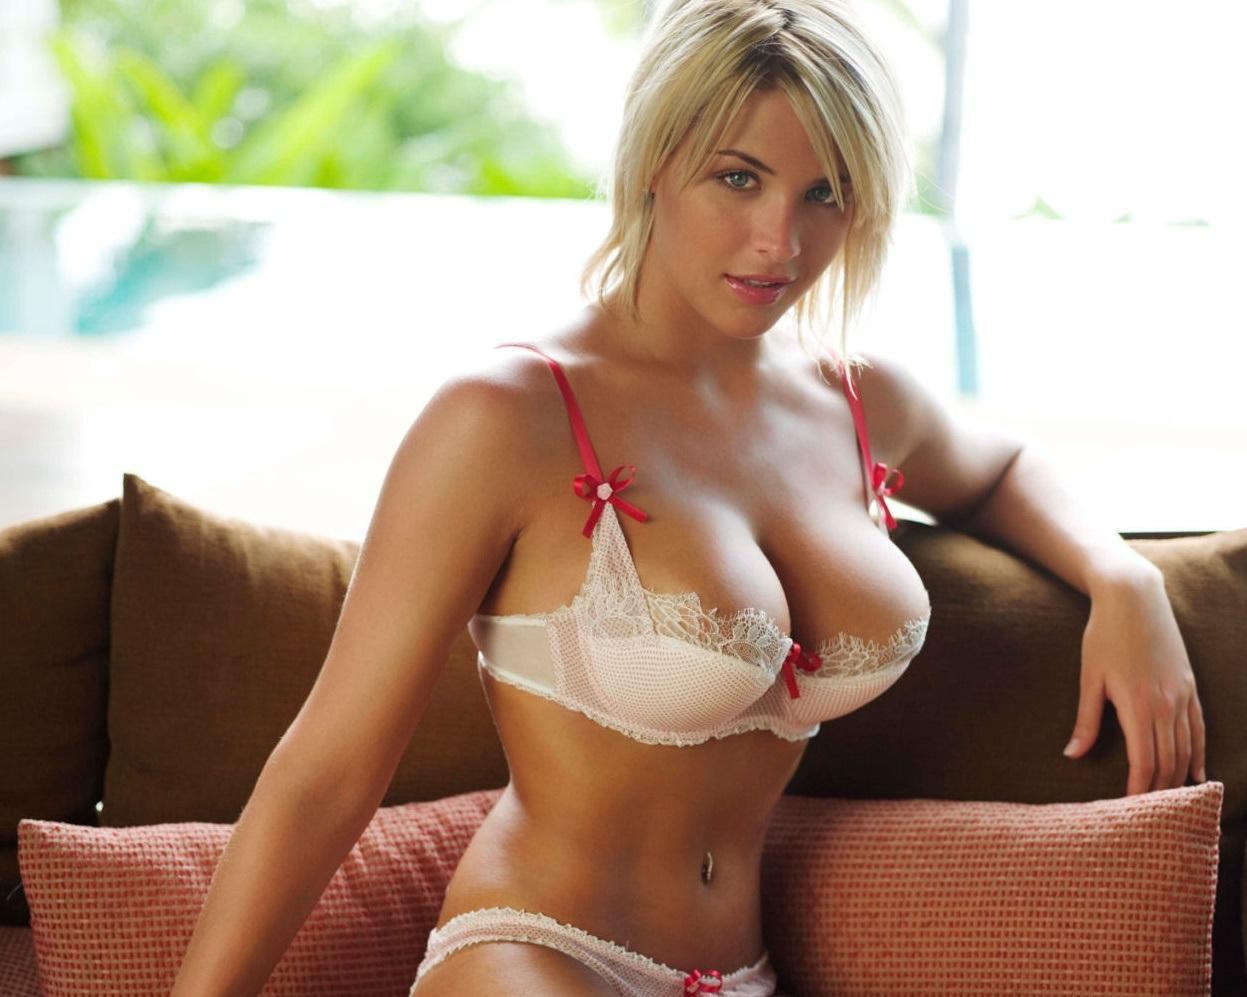 Gemma Atkinson Mr Bean Daughter